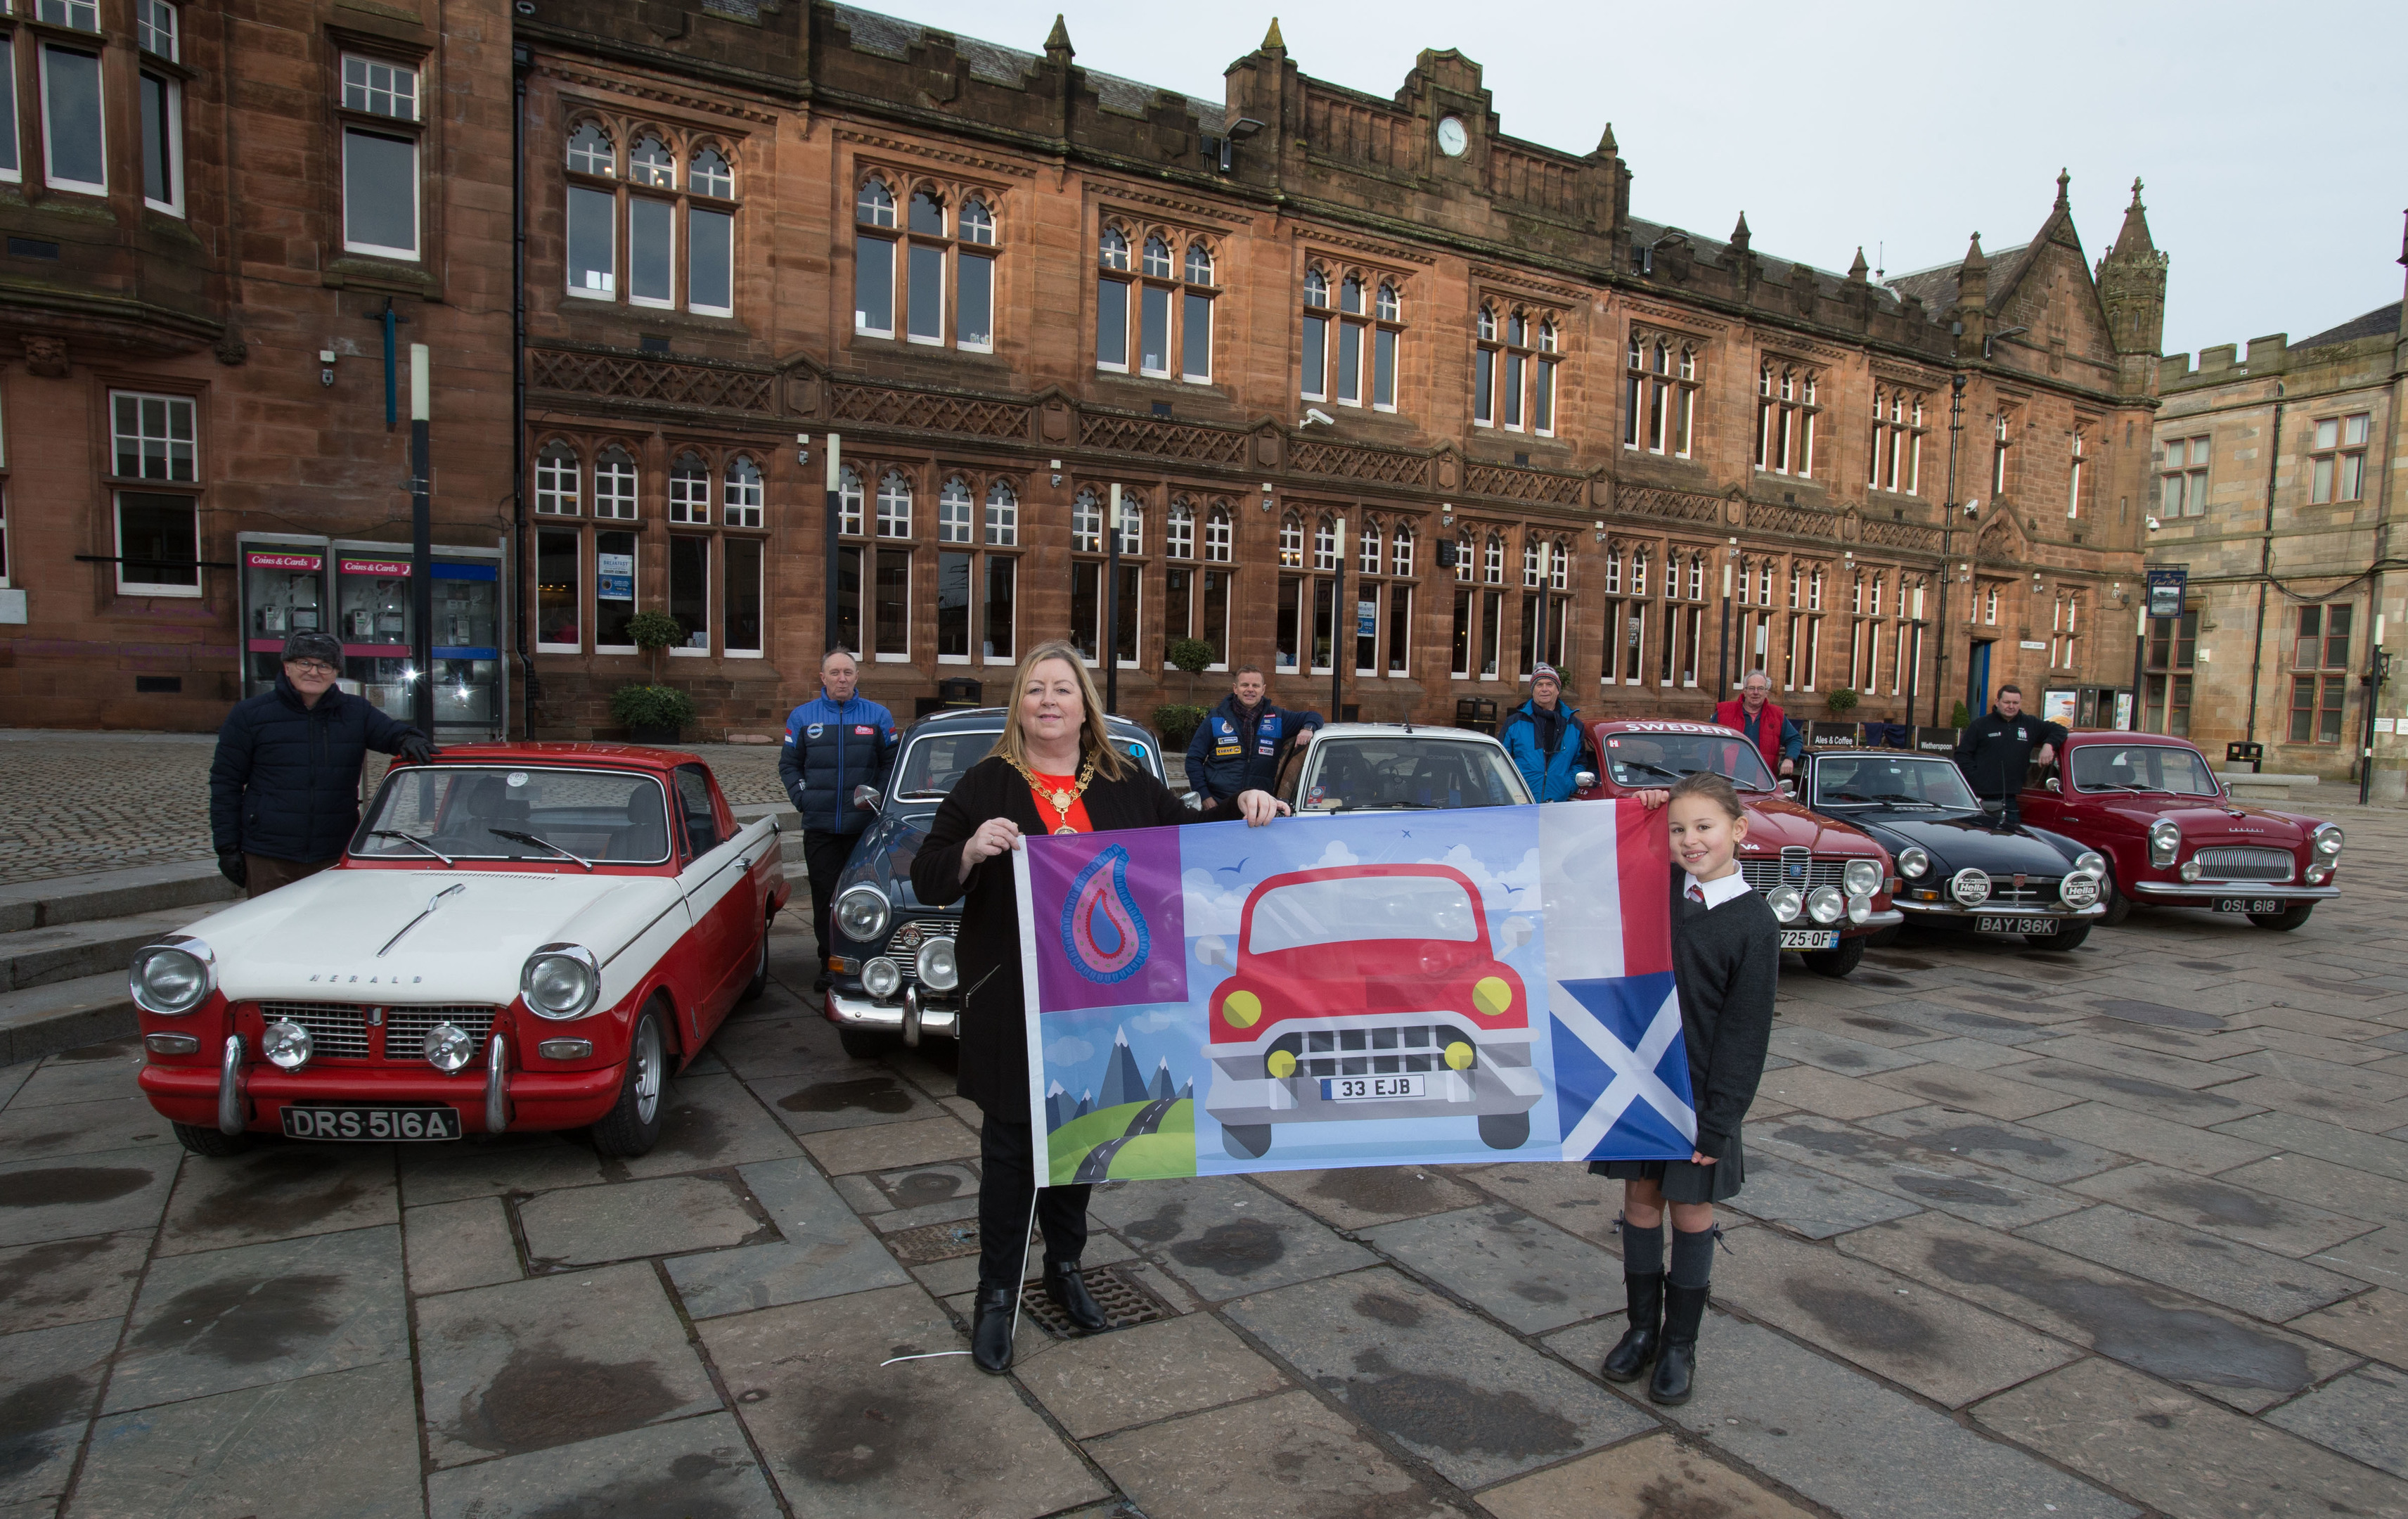 Renfrewshire Provost Lorraine Cameron and Primary 6 pupil Emilia Kozlowska, who won a Renfrewshire-wide school competition to design the flag to be used to wave off the drivers